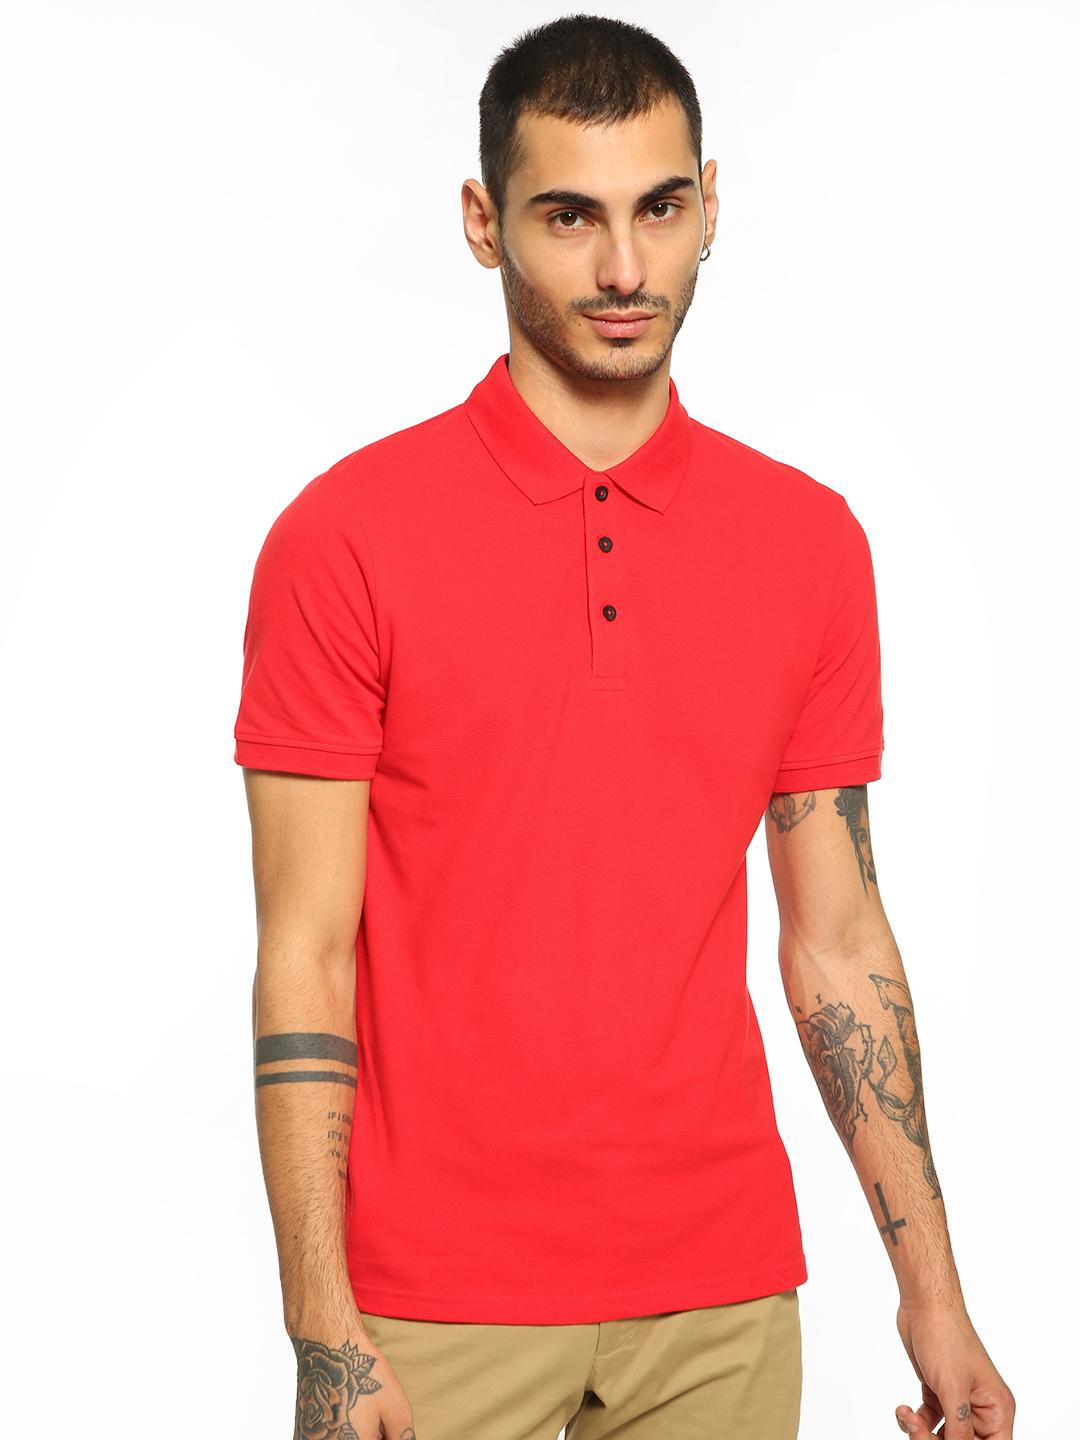 Blue Saint Red Basic Short Sleeve Polo Shirt 1